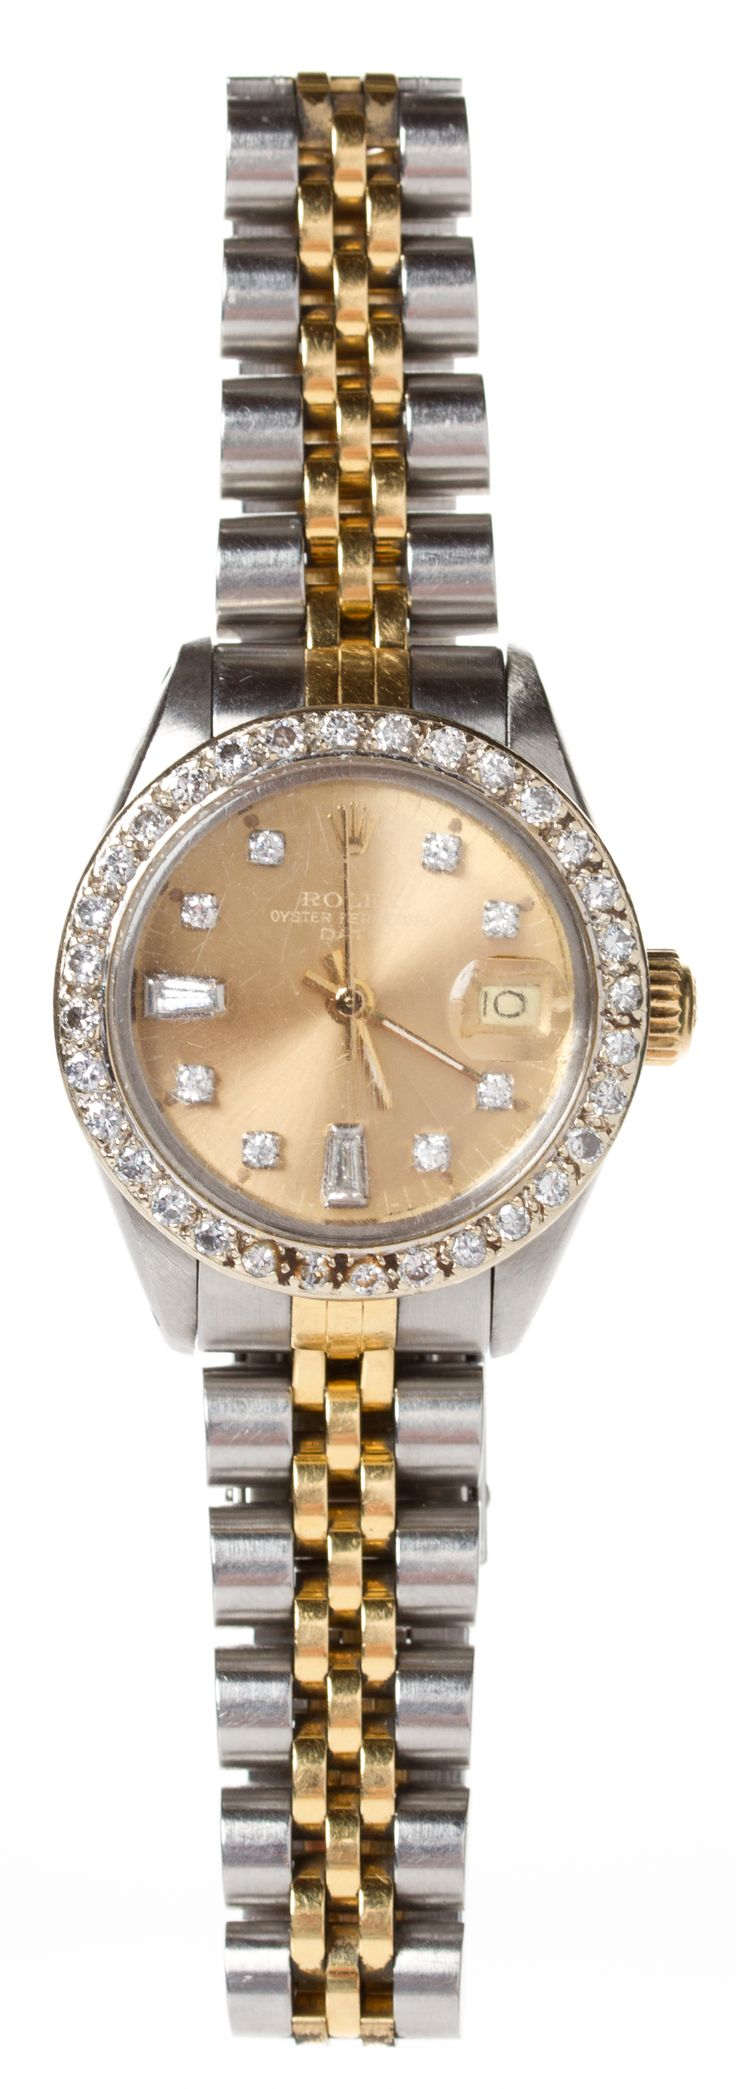 Rolex Watch @Michelle Coleman-HERS